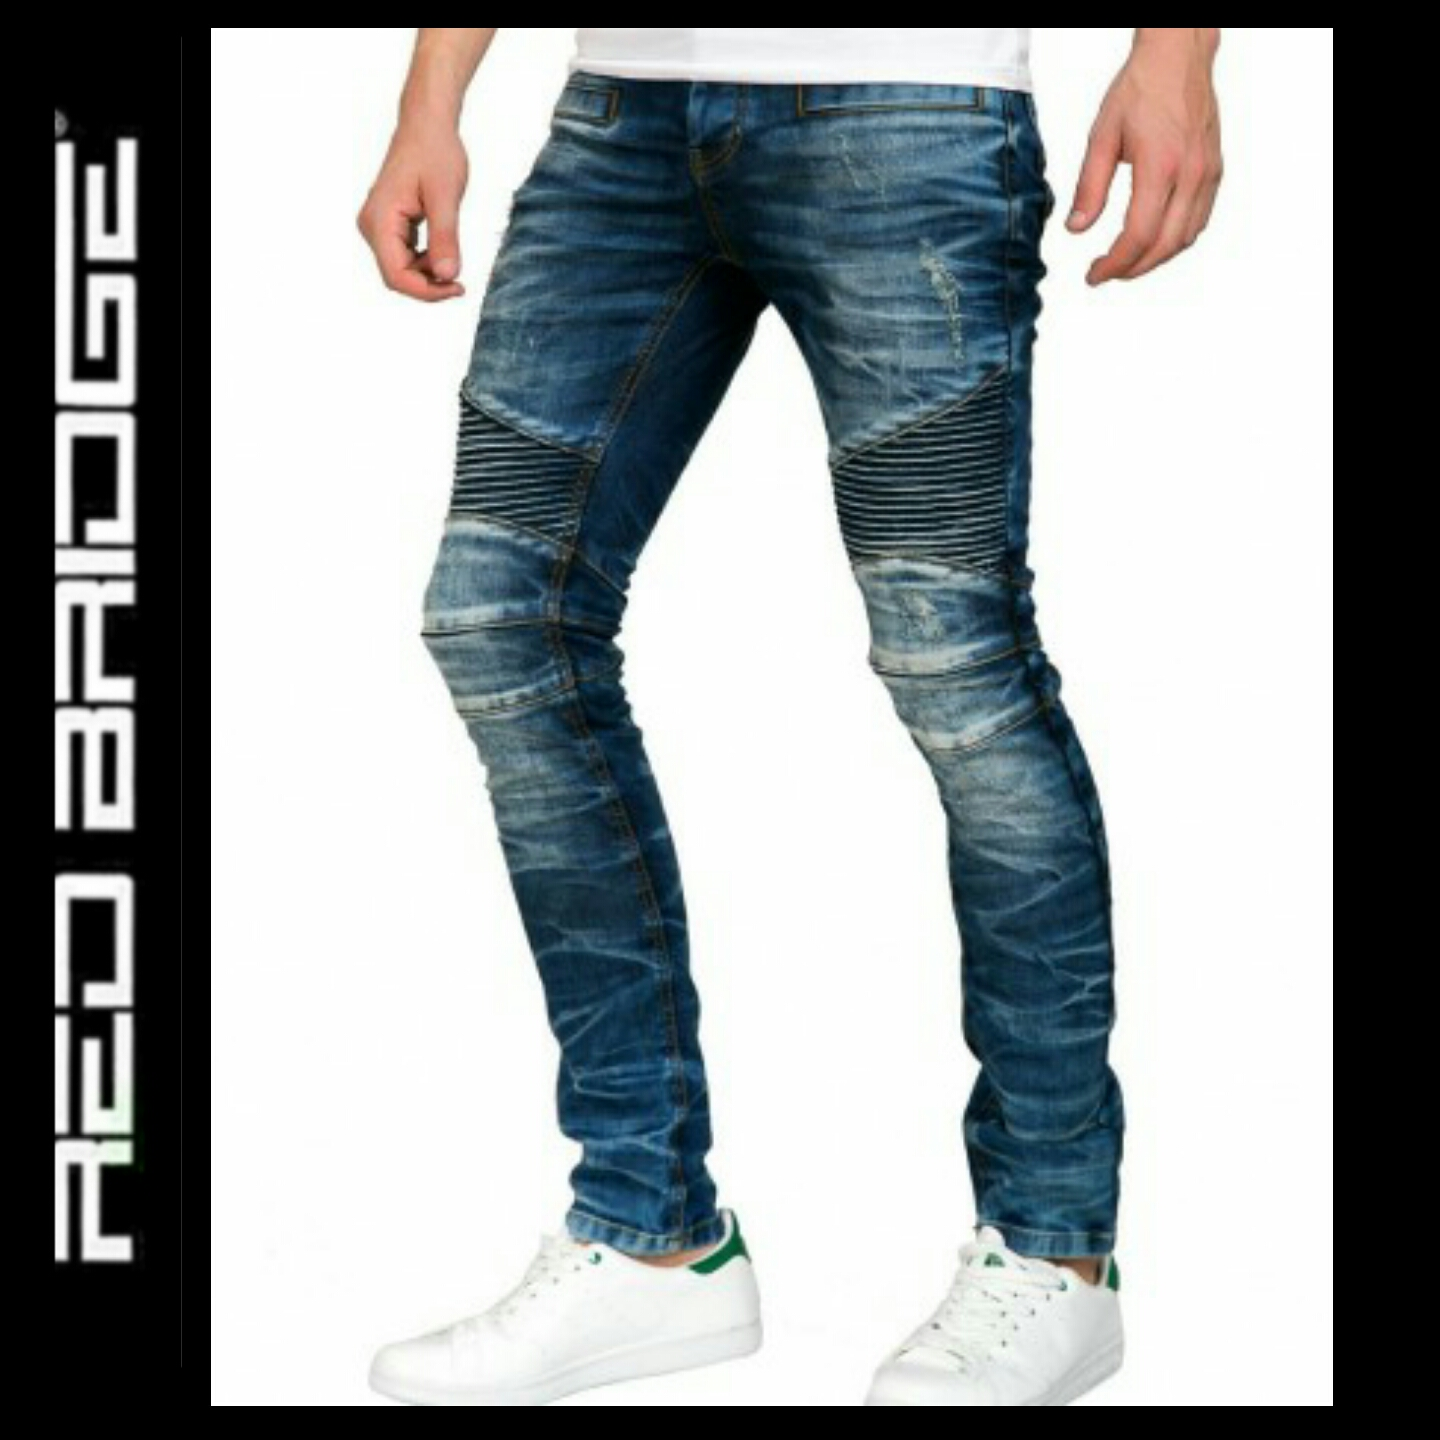 2ed794a736 Red Bridge Biker Blue | Cipo & Baxx Red Bridge Dzseki Kabát Webshop